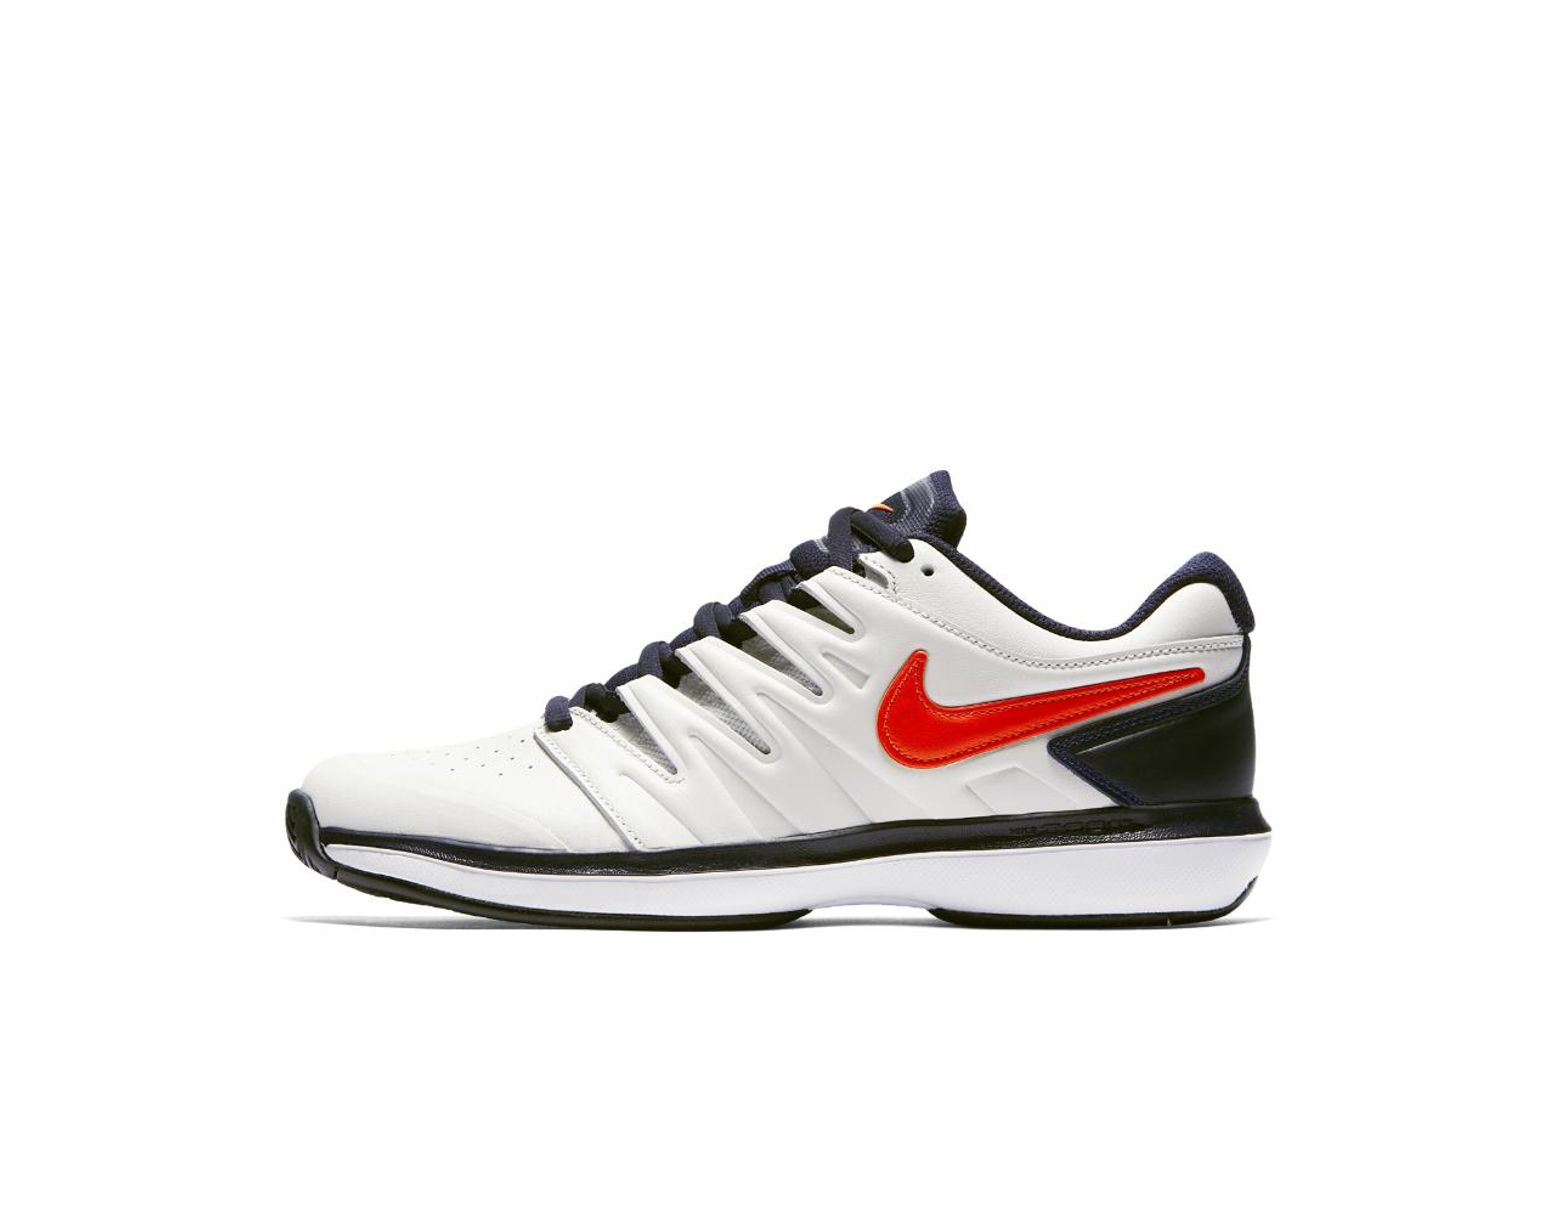 7a93b37e0b9f0 Lyst - Nike Air Zoom Prestige Leather Hc Men s Tennis Shoe in White for Men